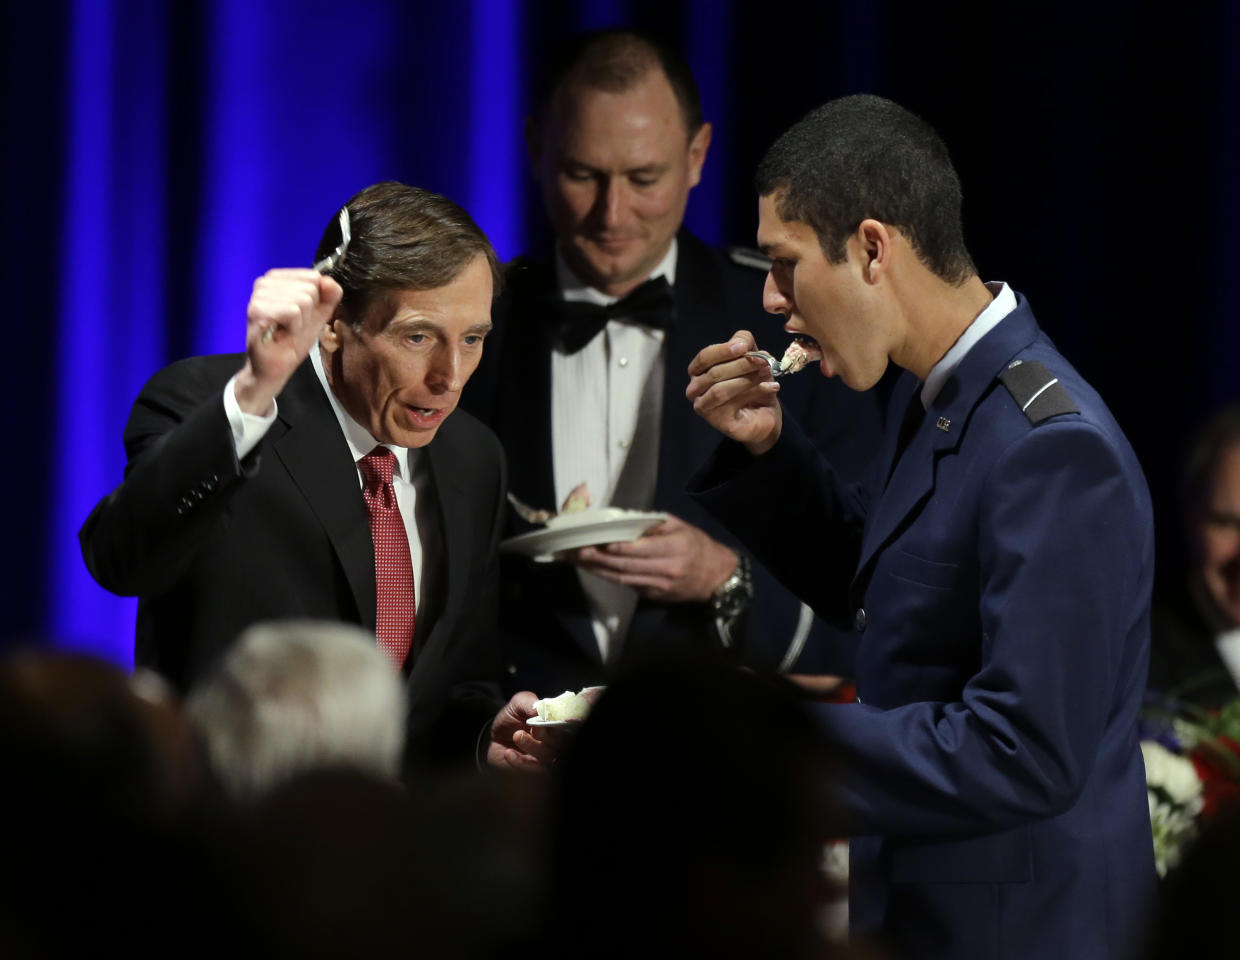 David H. Petraeus, former army general and head of the Central Intelligence Agency, tastes a ceremonial cake presented to him by Hector Sandoval, a member of the USC ROTC program, at the annual dinner for veterans and ROTC students at the Univeristy of Southern California, in downtown Los Angeles Tuesday, March 26, 2013. It marked Petraeus' first public remarks since he retired as head of the CIA after an extramarital affair scandal. (AP Photo/Reed Saxon)